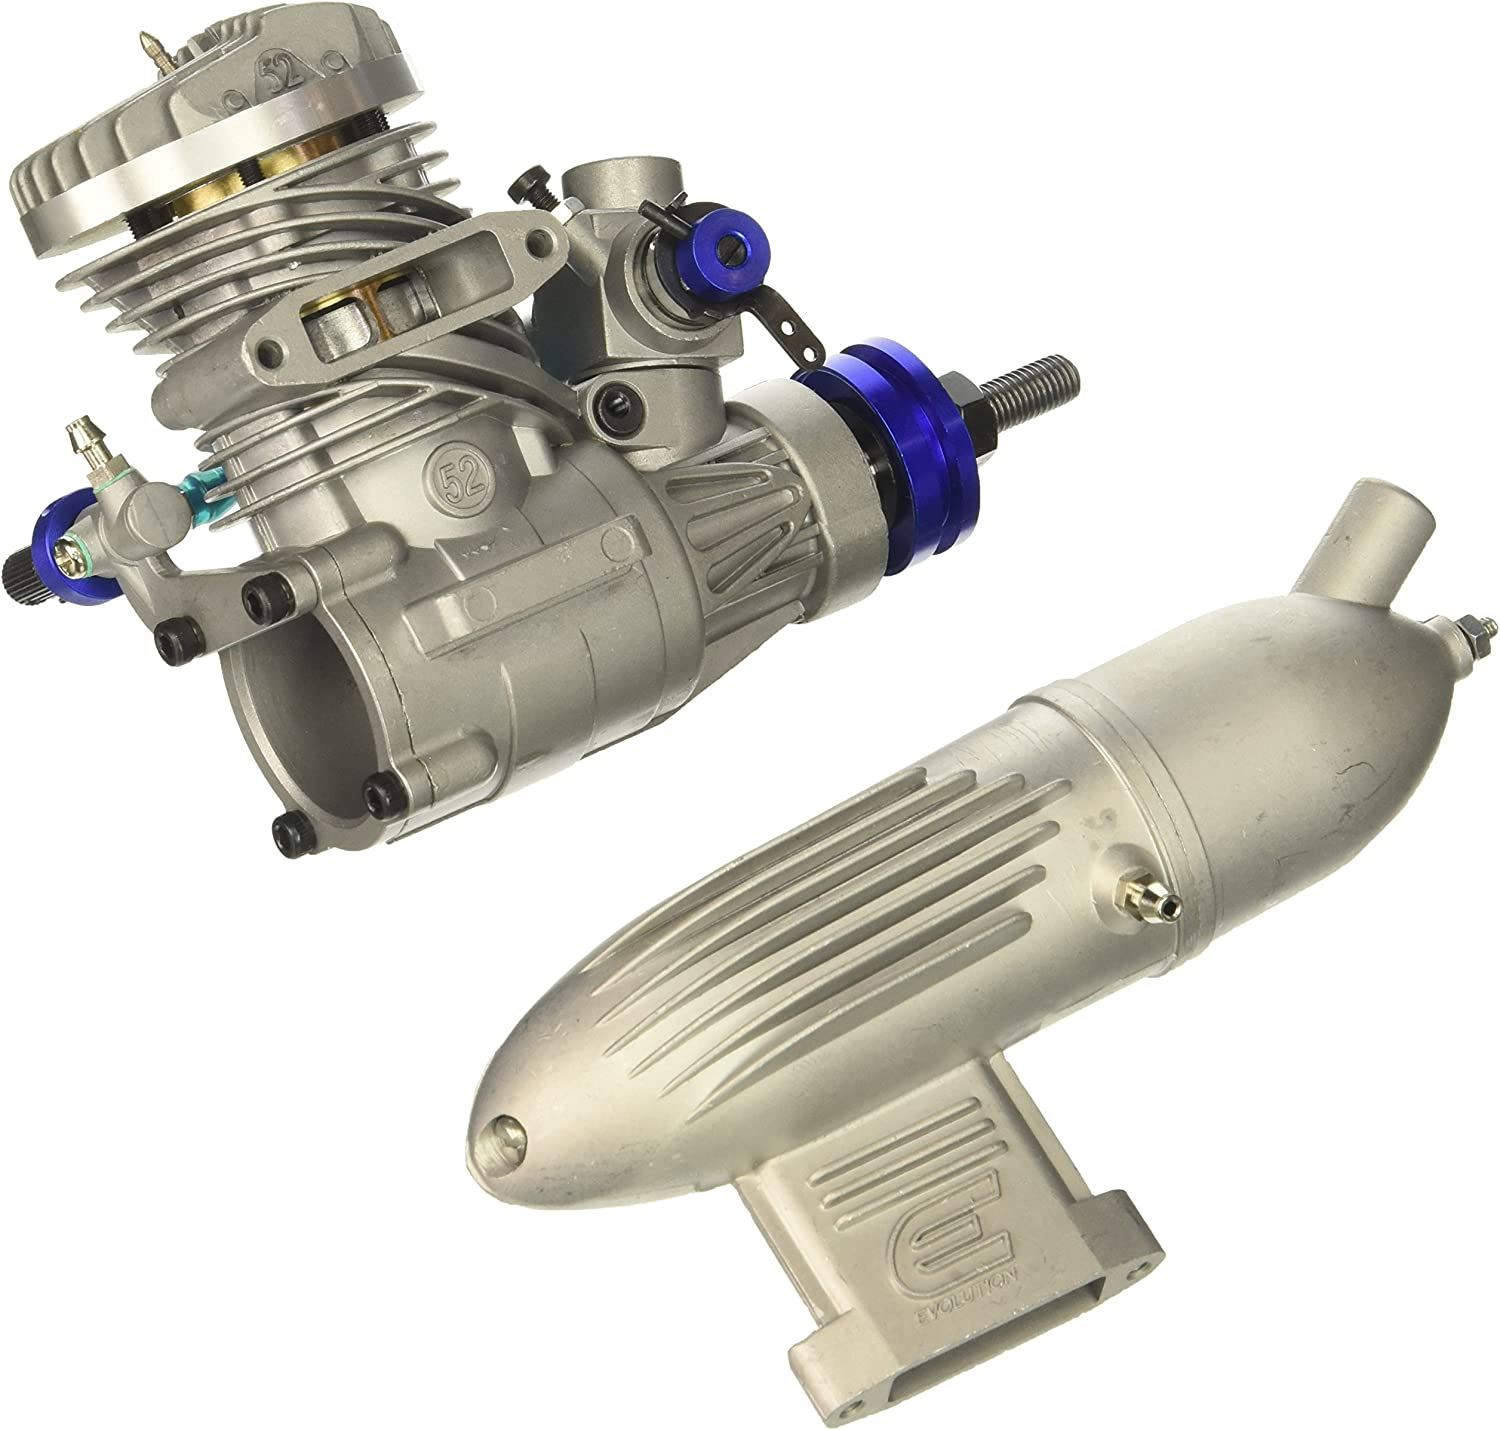 Evolution Engines 52NX Glow Engine with Muffler Complete Engines ...